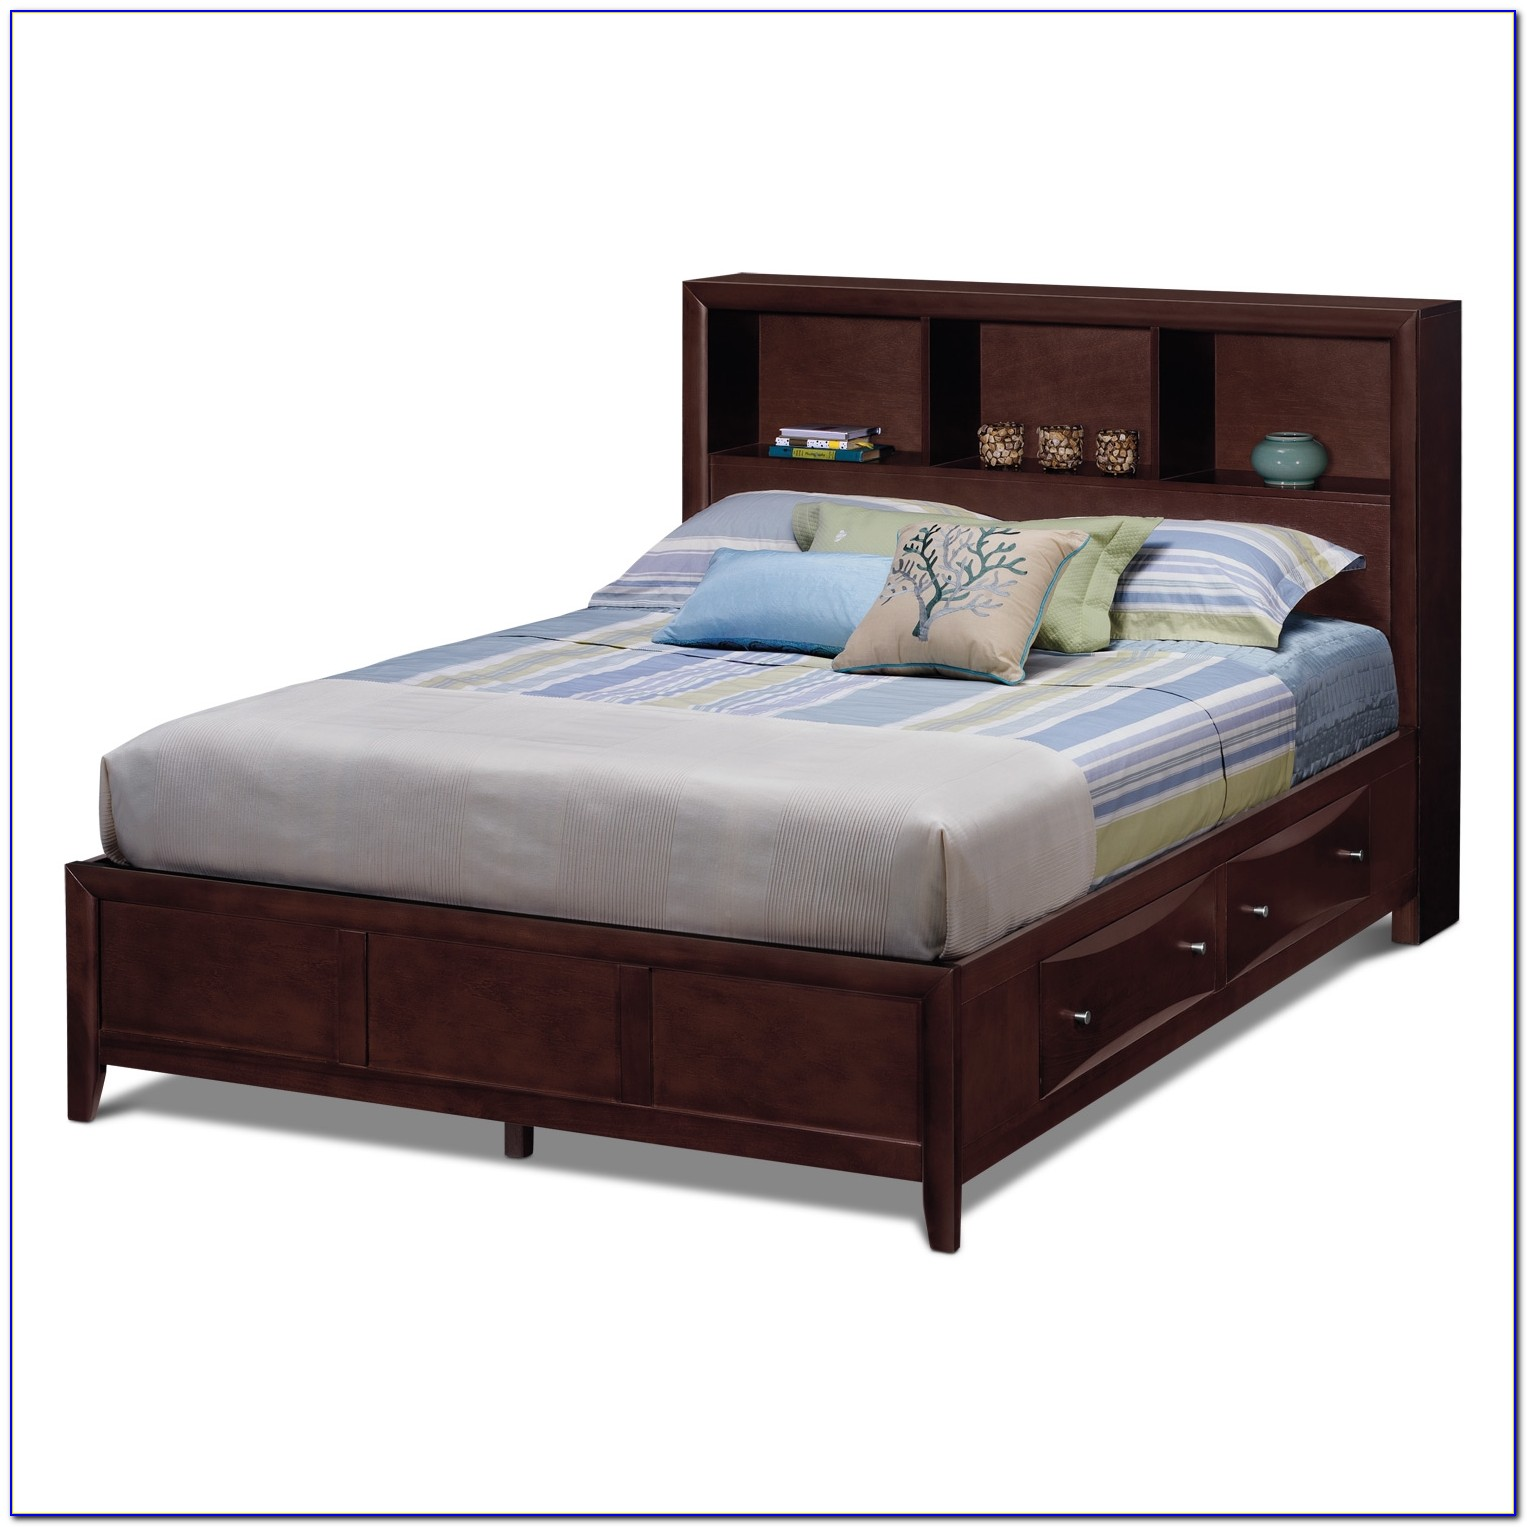 Discontinued American Signature Bedroom Furniture